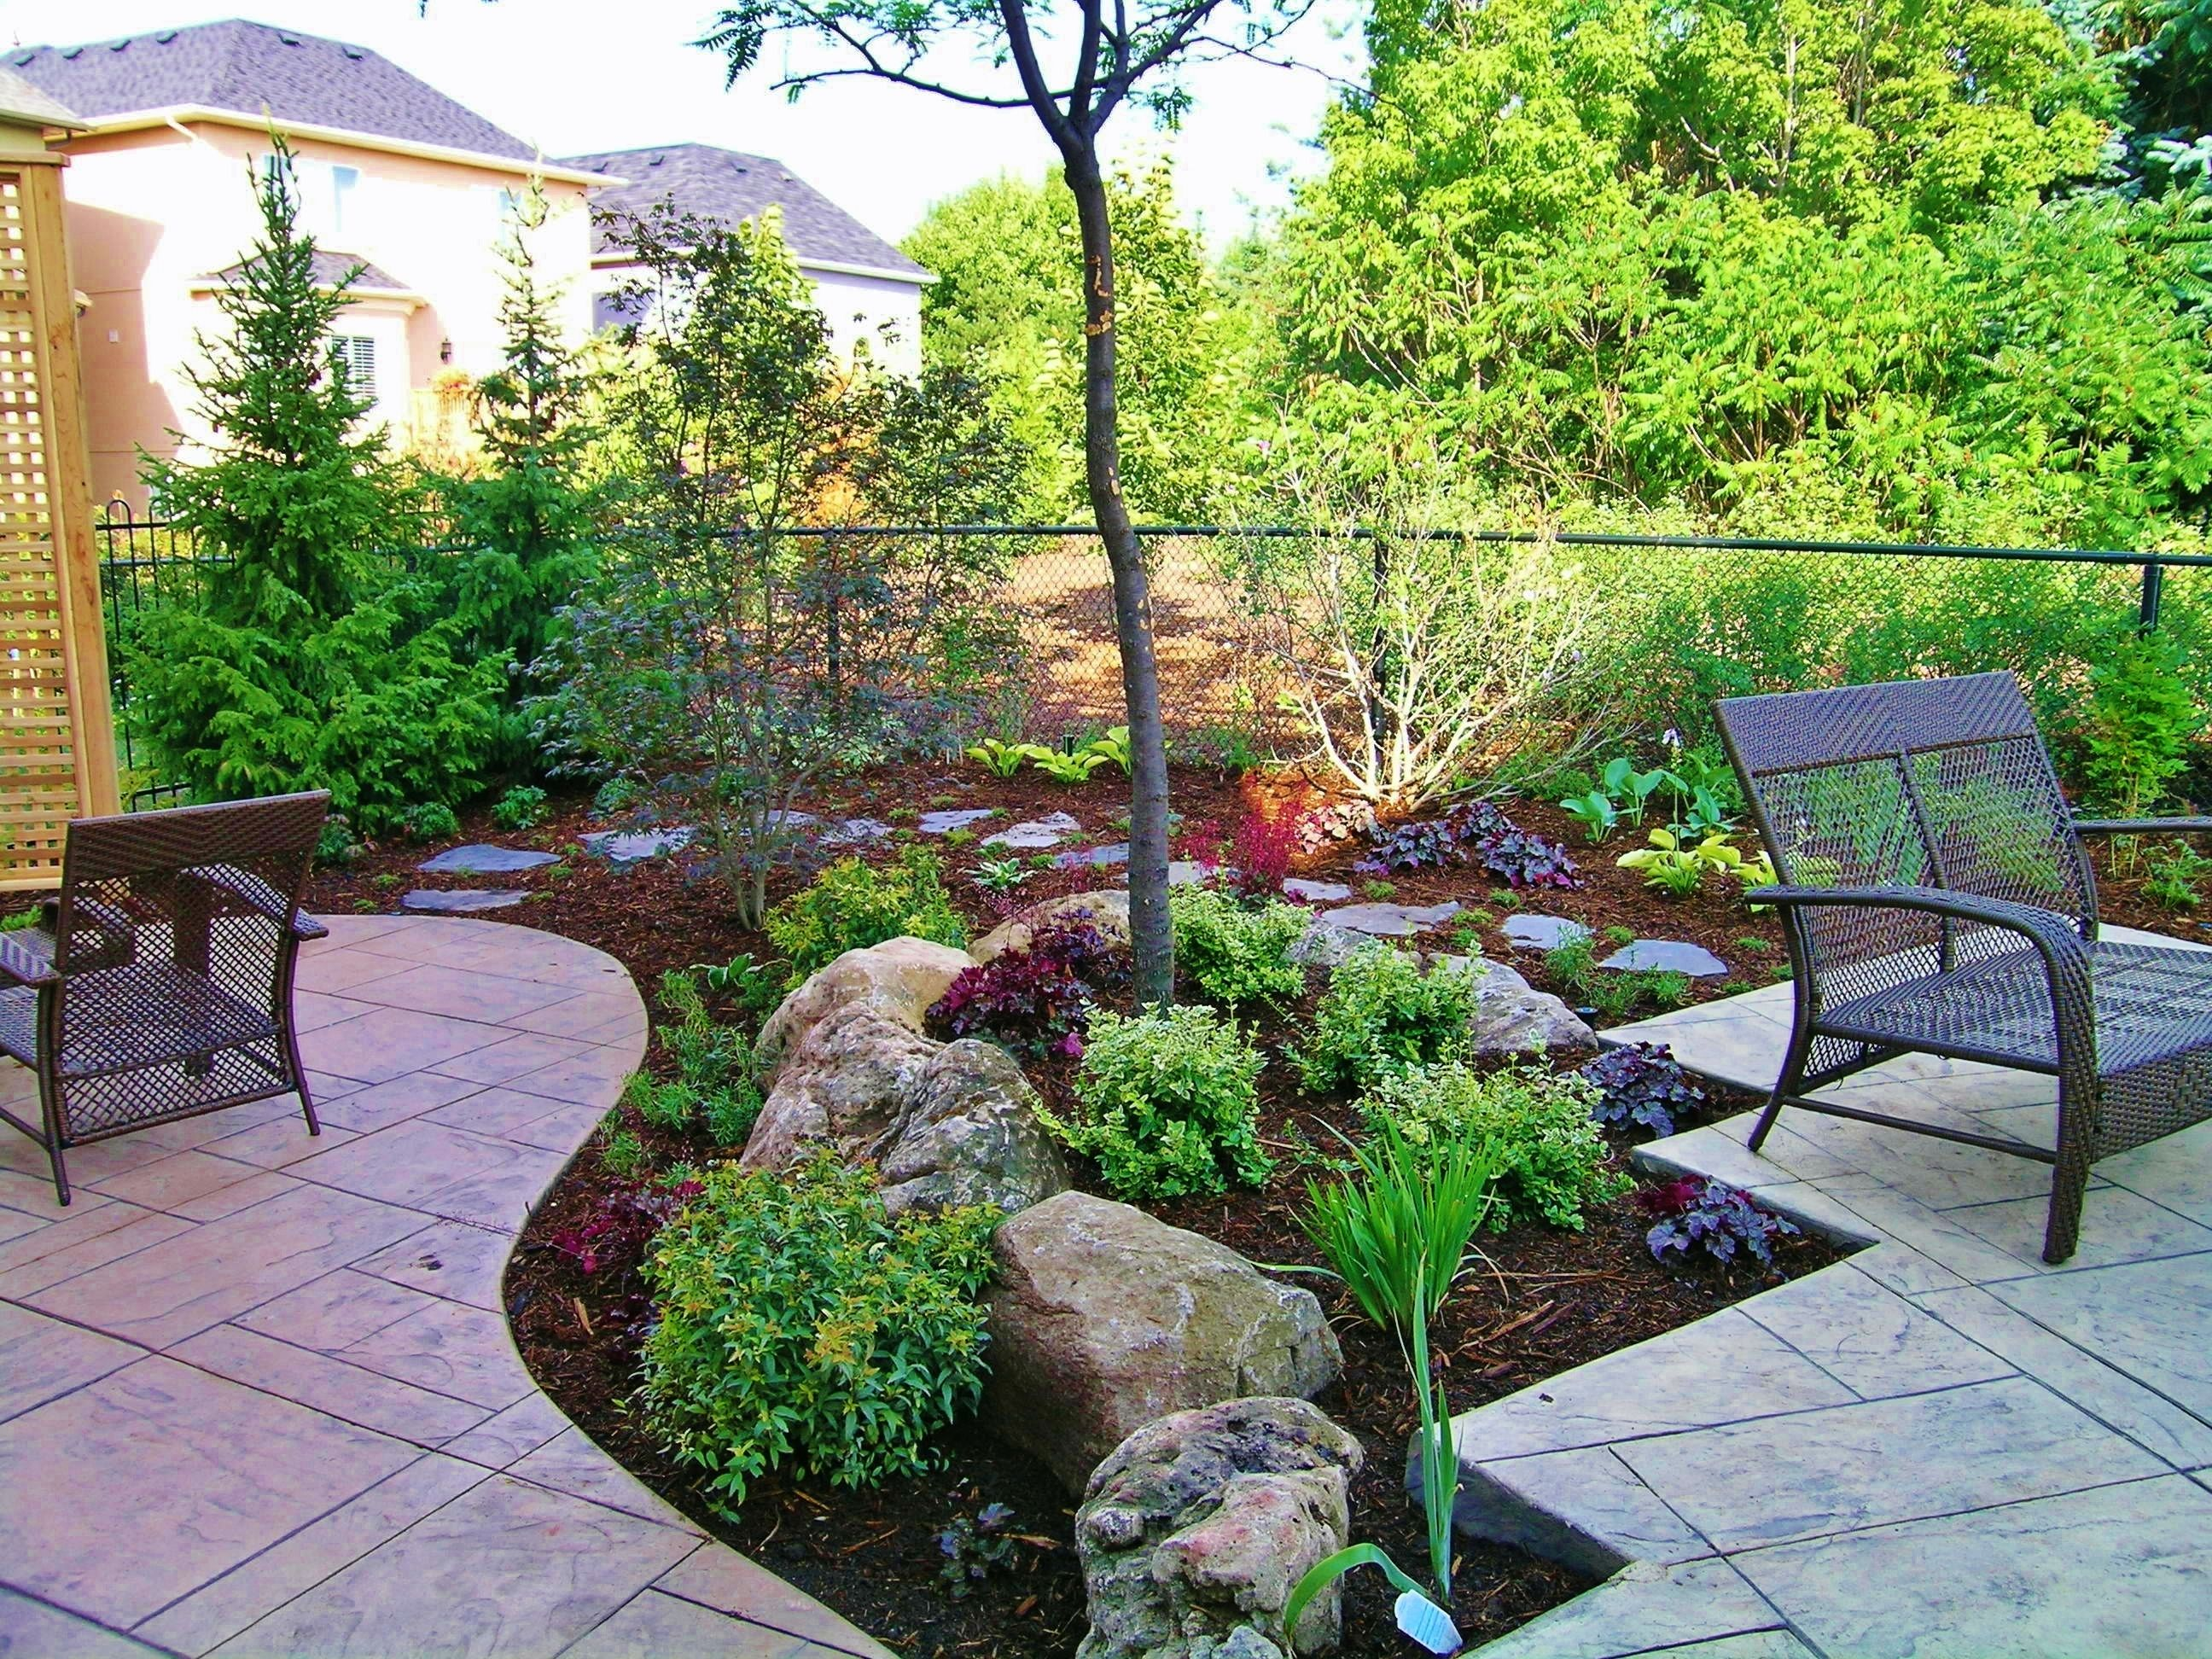 Backyard Without Grass Backyard Landscaping Plans Small Backyard Gardens Backyard Garden Design